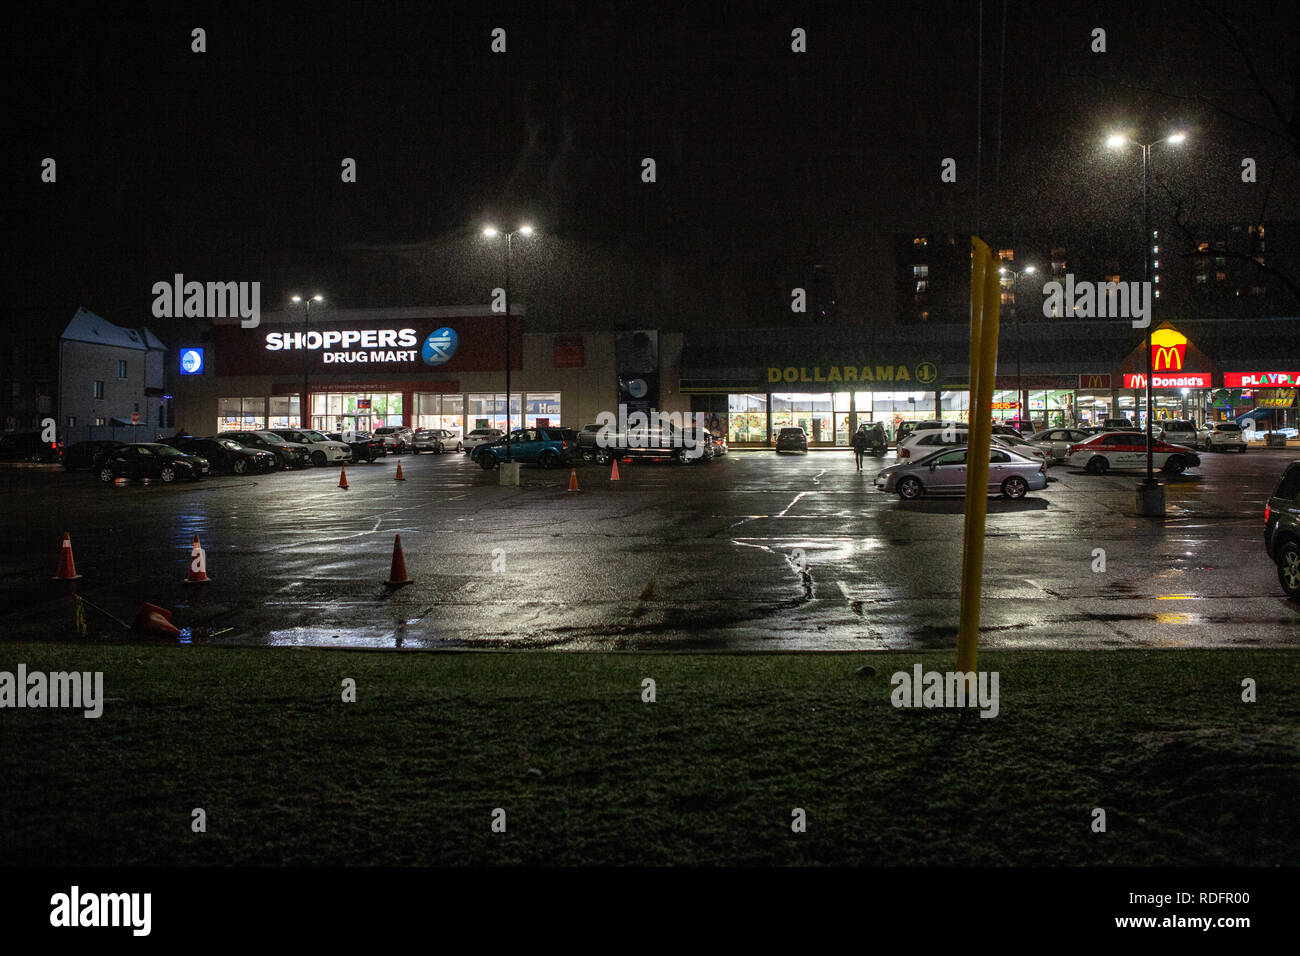 Toronto, CANADA - December 4th, 2019: Dramatic rainy night with deserted streets and reflecting traffic lights by illuminated shop  store - Stock Image